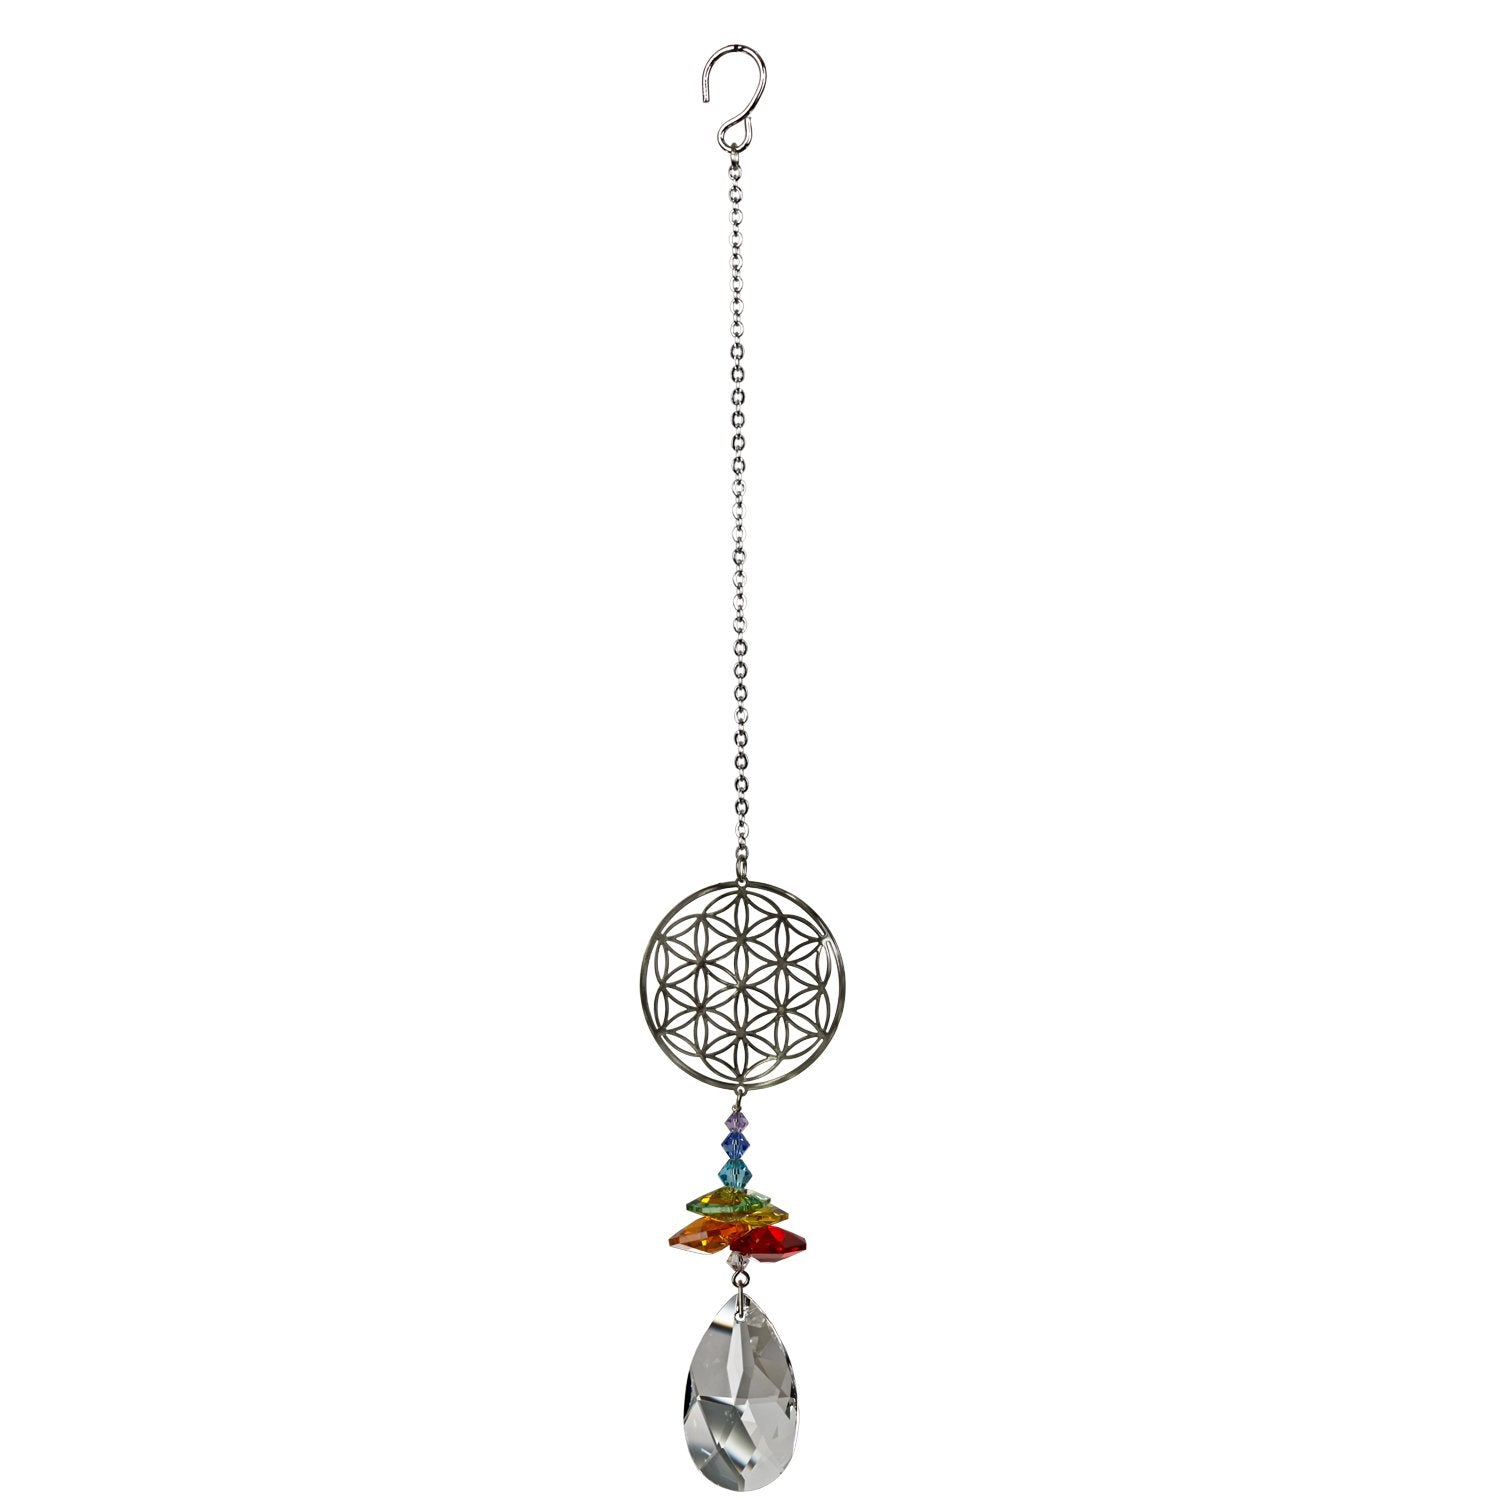 Crystal Fantasy Suncatcher - Flower of Life full product image